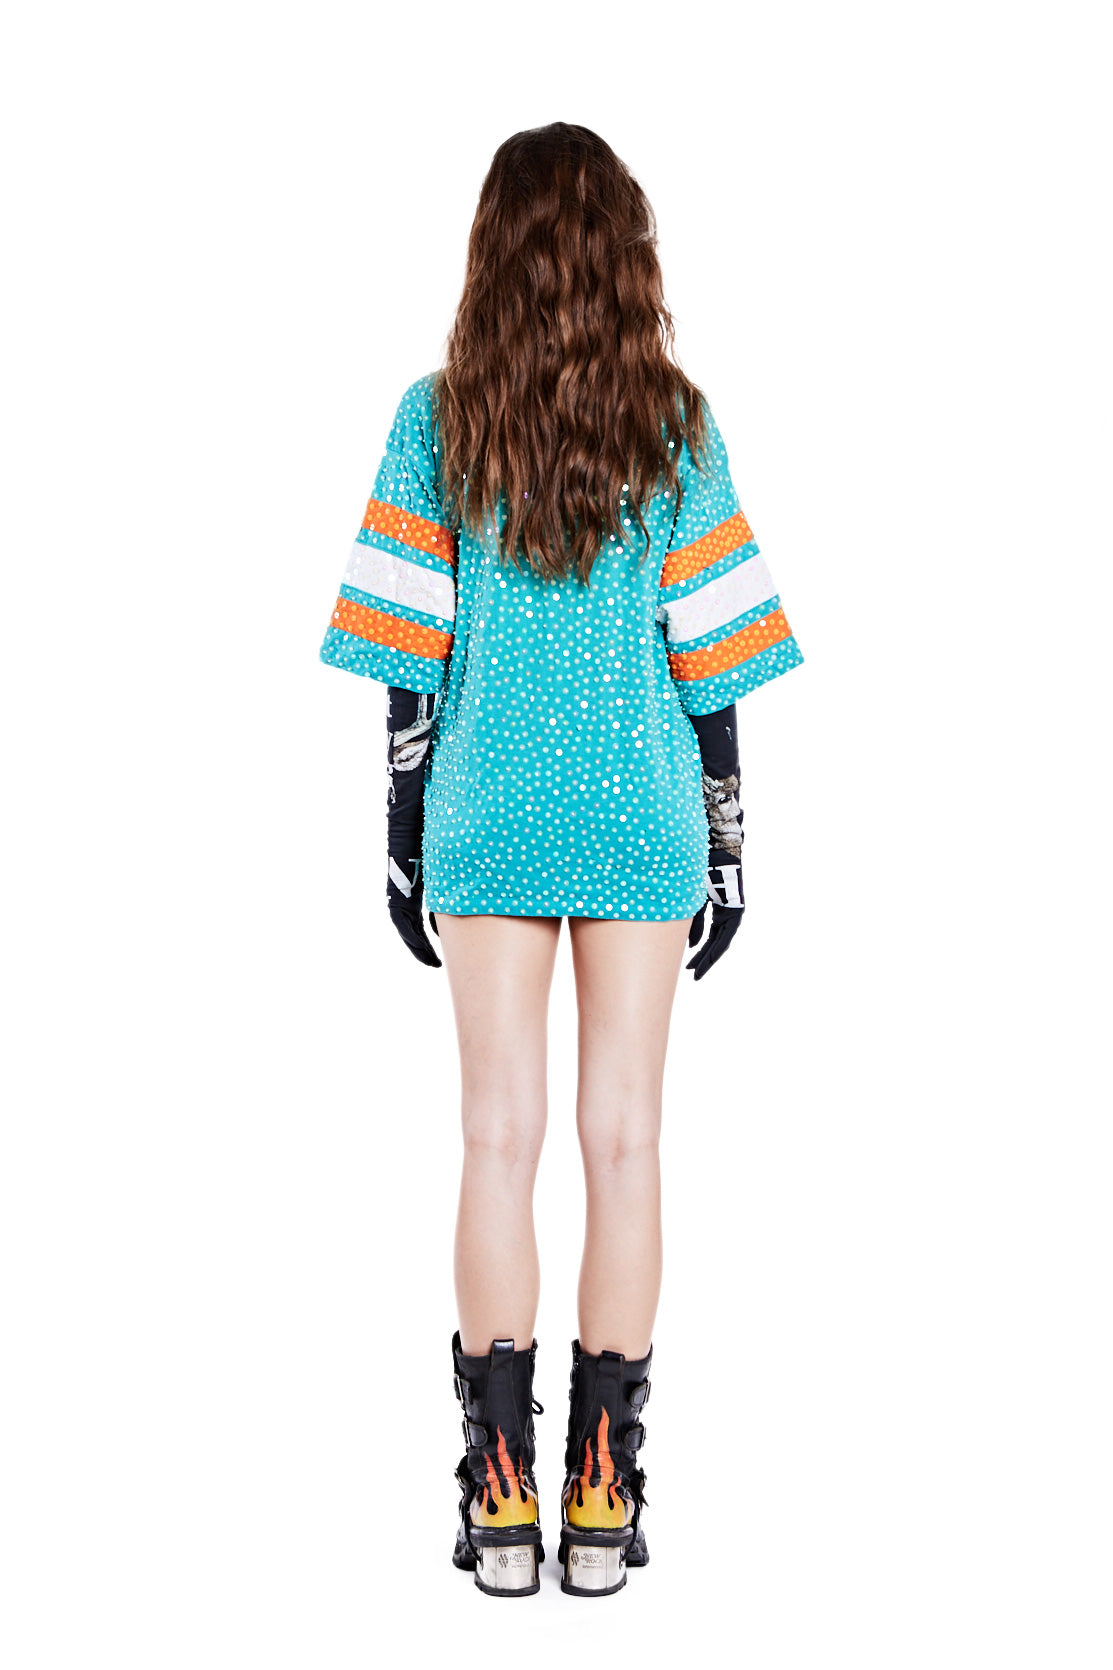 American Football Jersey Top - Miami Dolphins (2) - I LOVE DIY by Panida